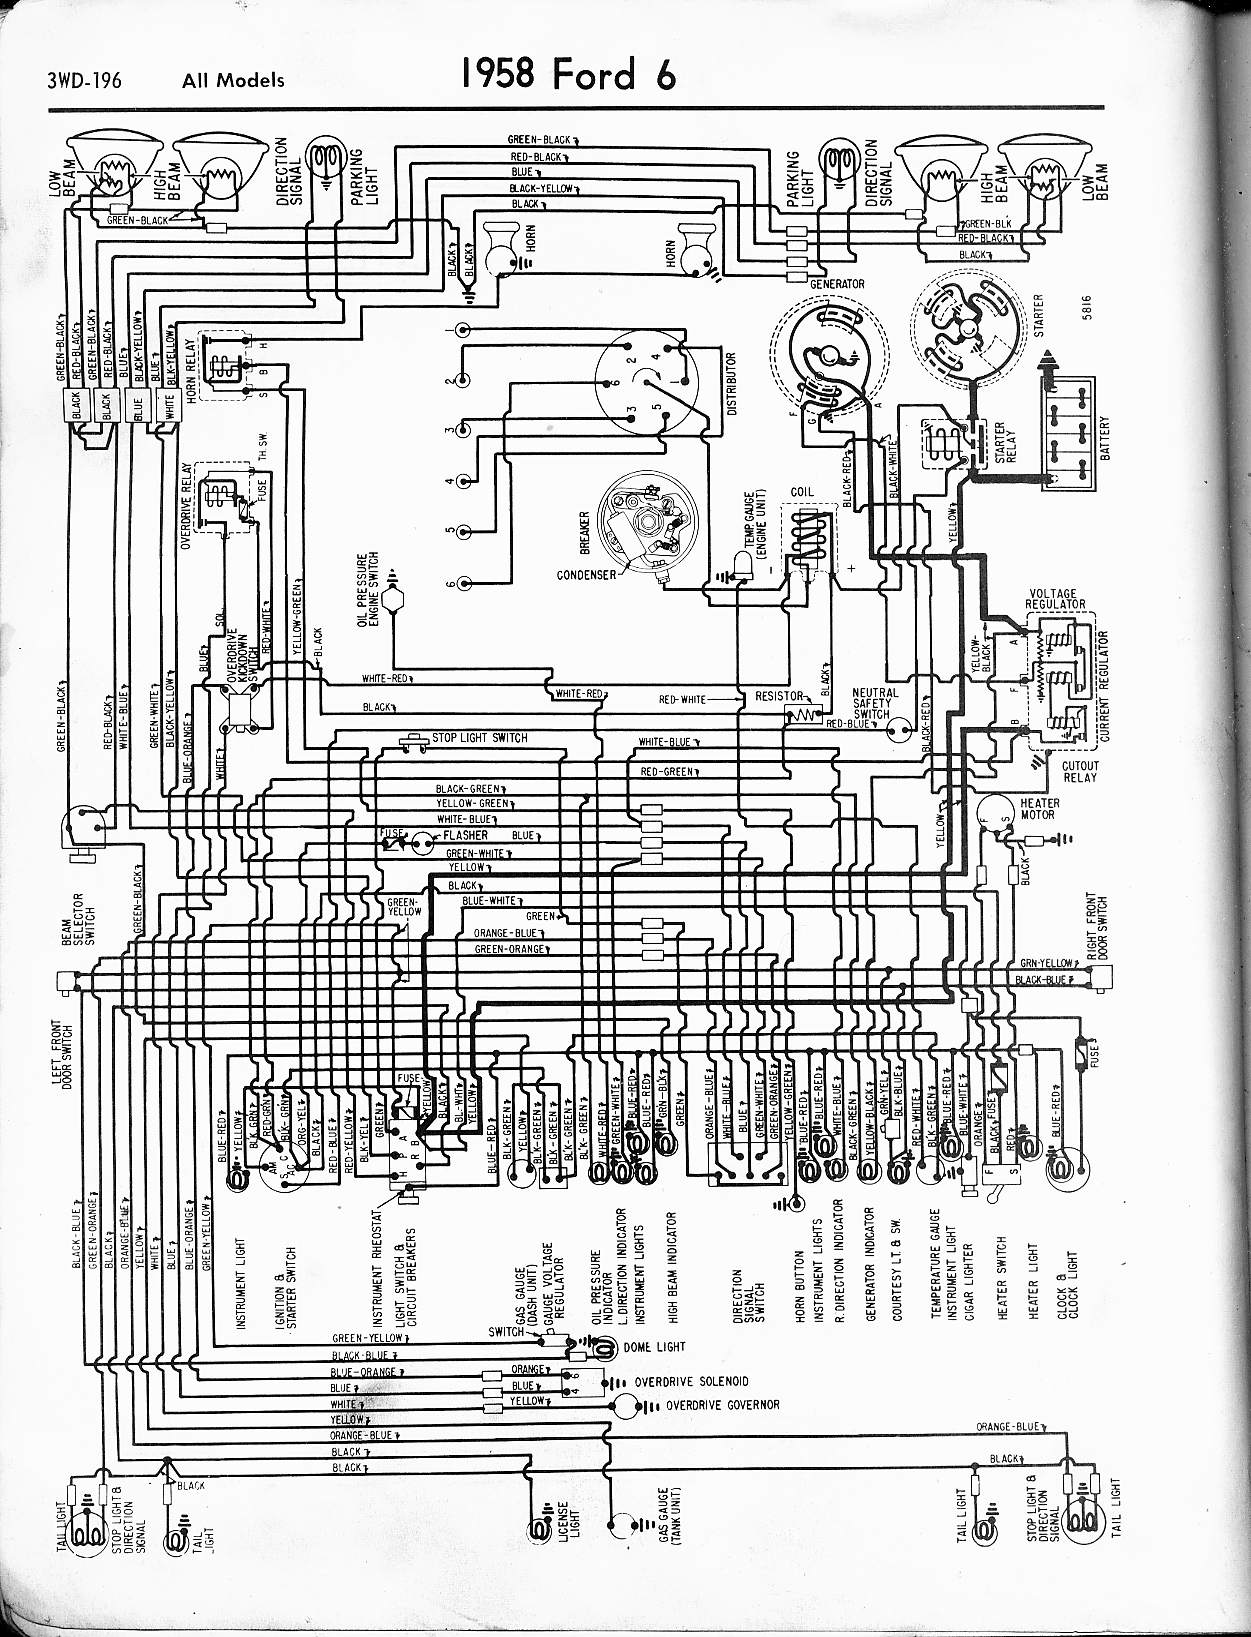 Brilliant Ford 50 Wiring Harness Basic Electronics Wiring Diagram Wiring Cloud Usnesfoxcilixyz